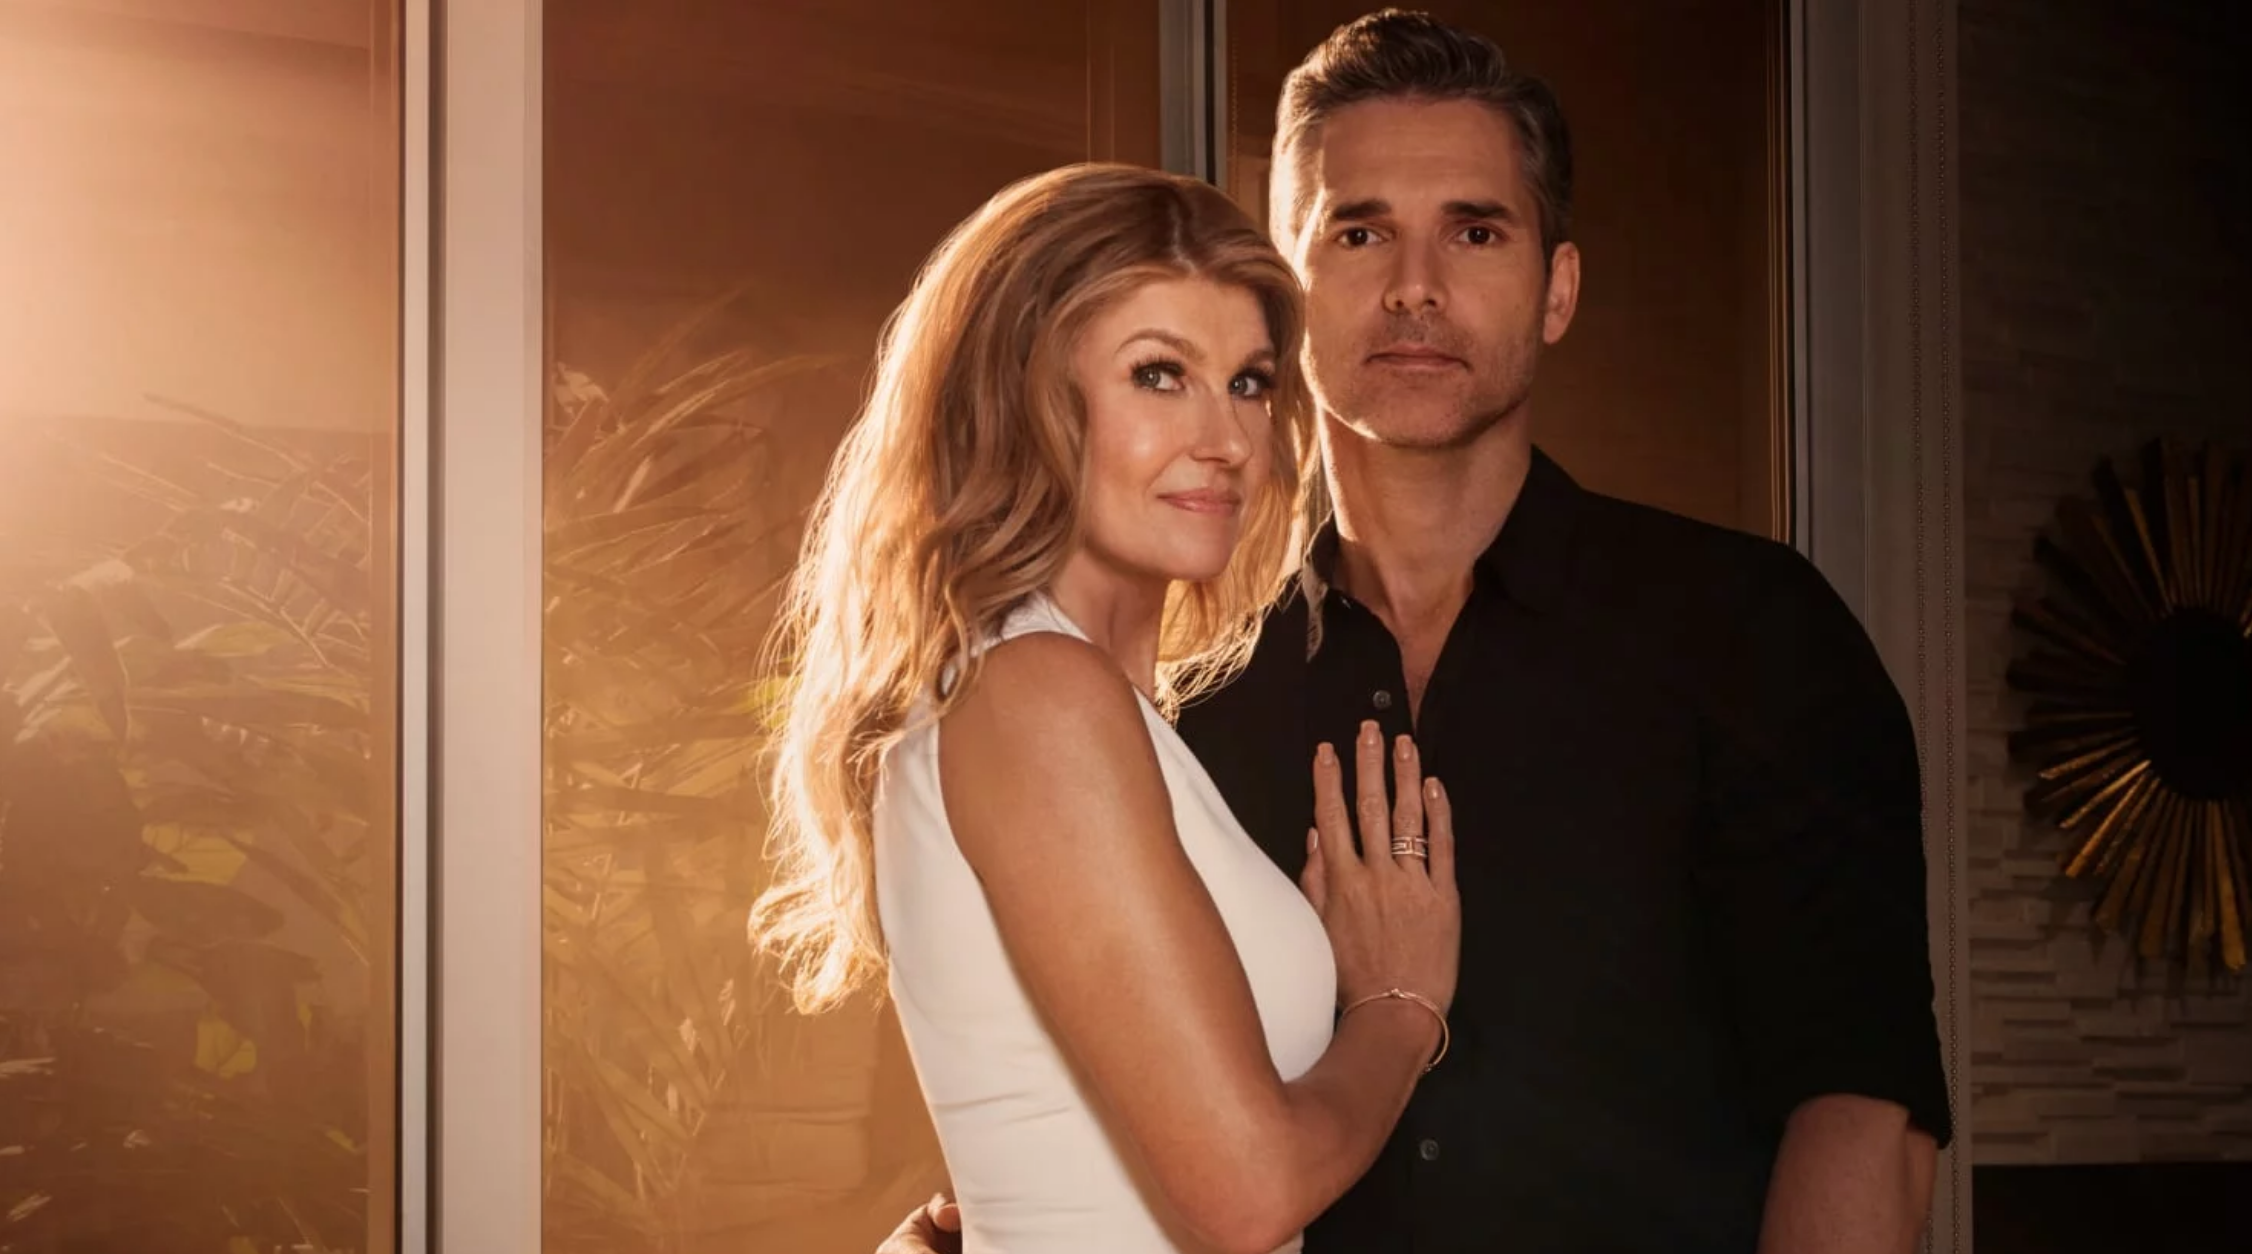 True Crime Podcast Dirty John Is Coming To Netflix On Valentine's Day